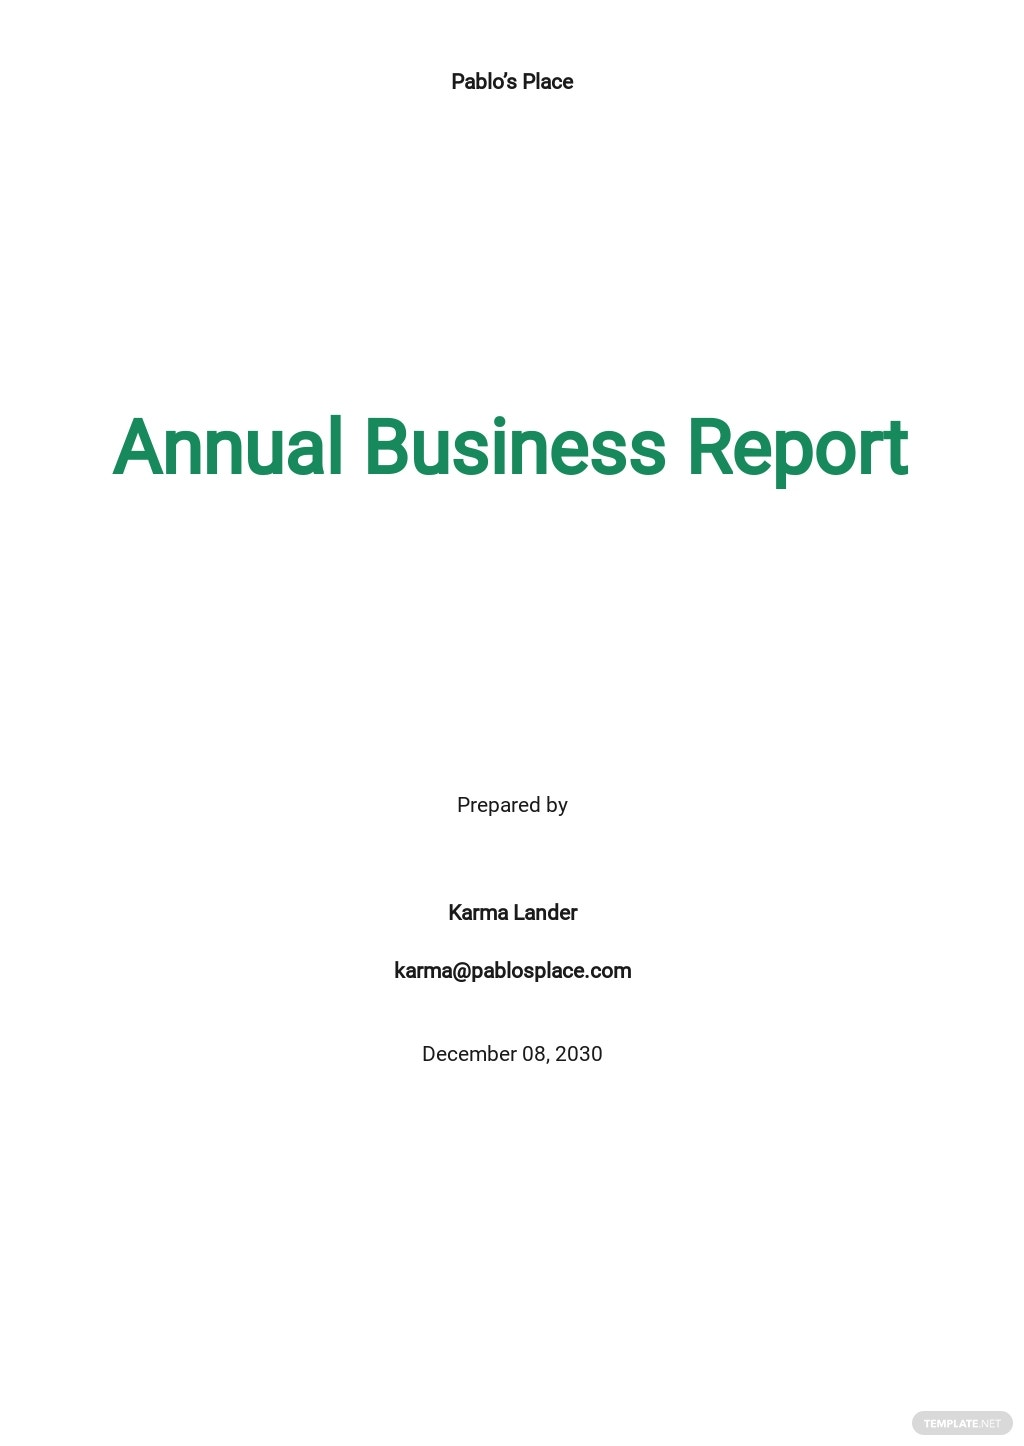 Annual Business Report Template.jpe